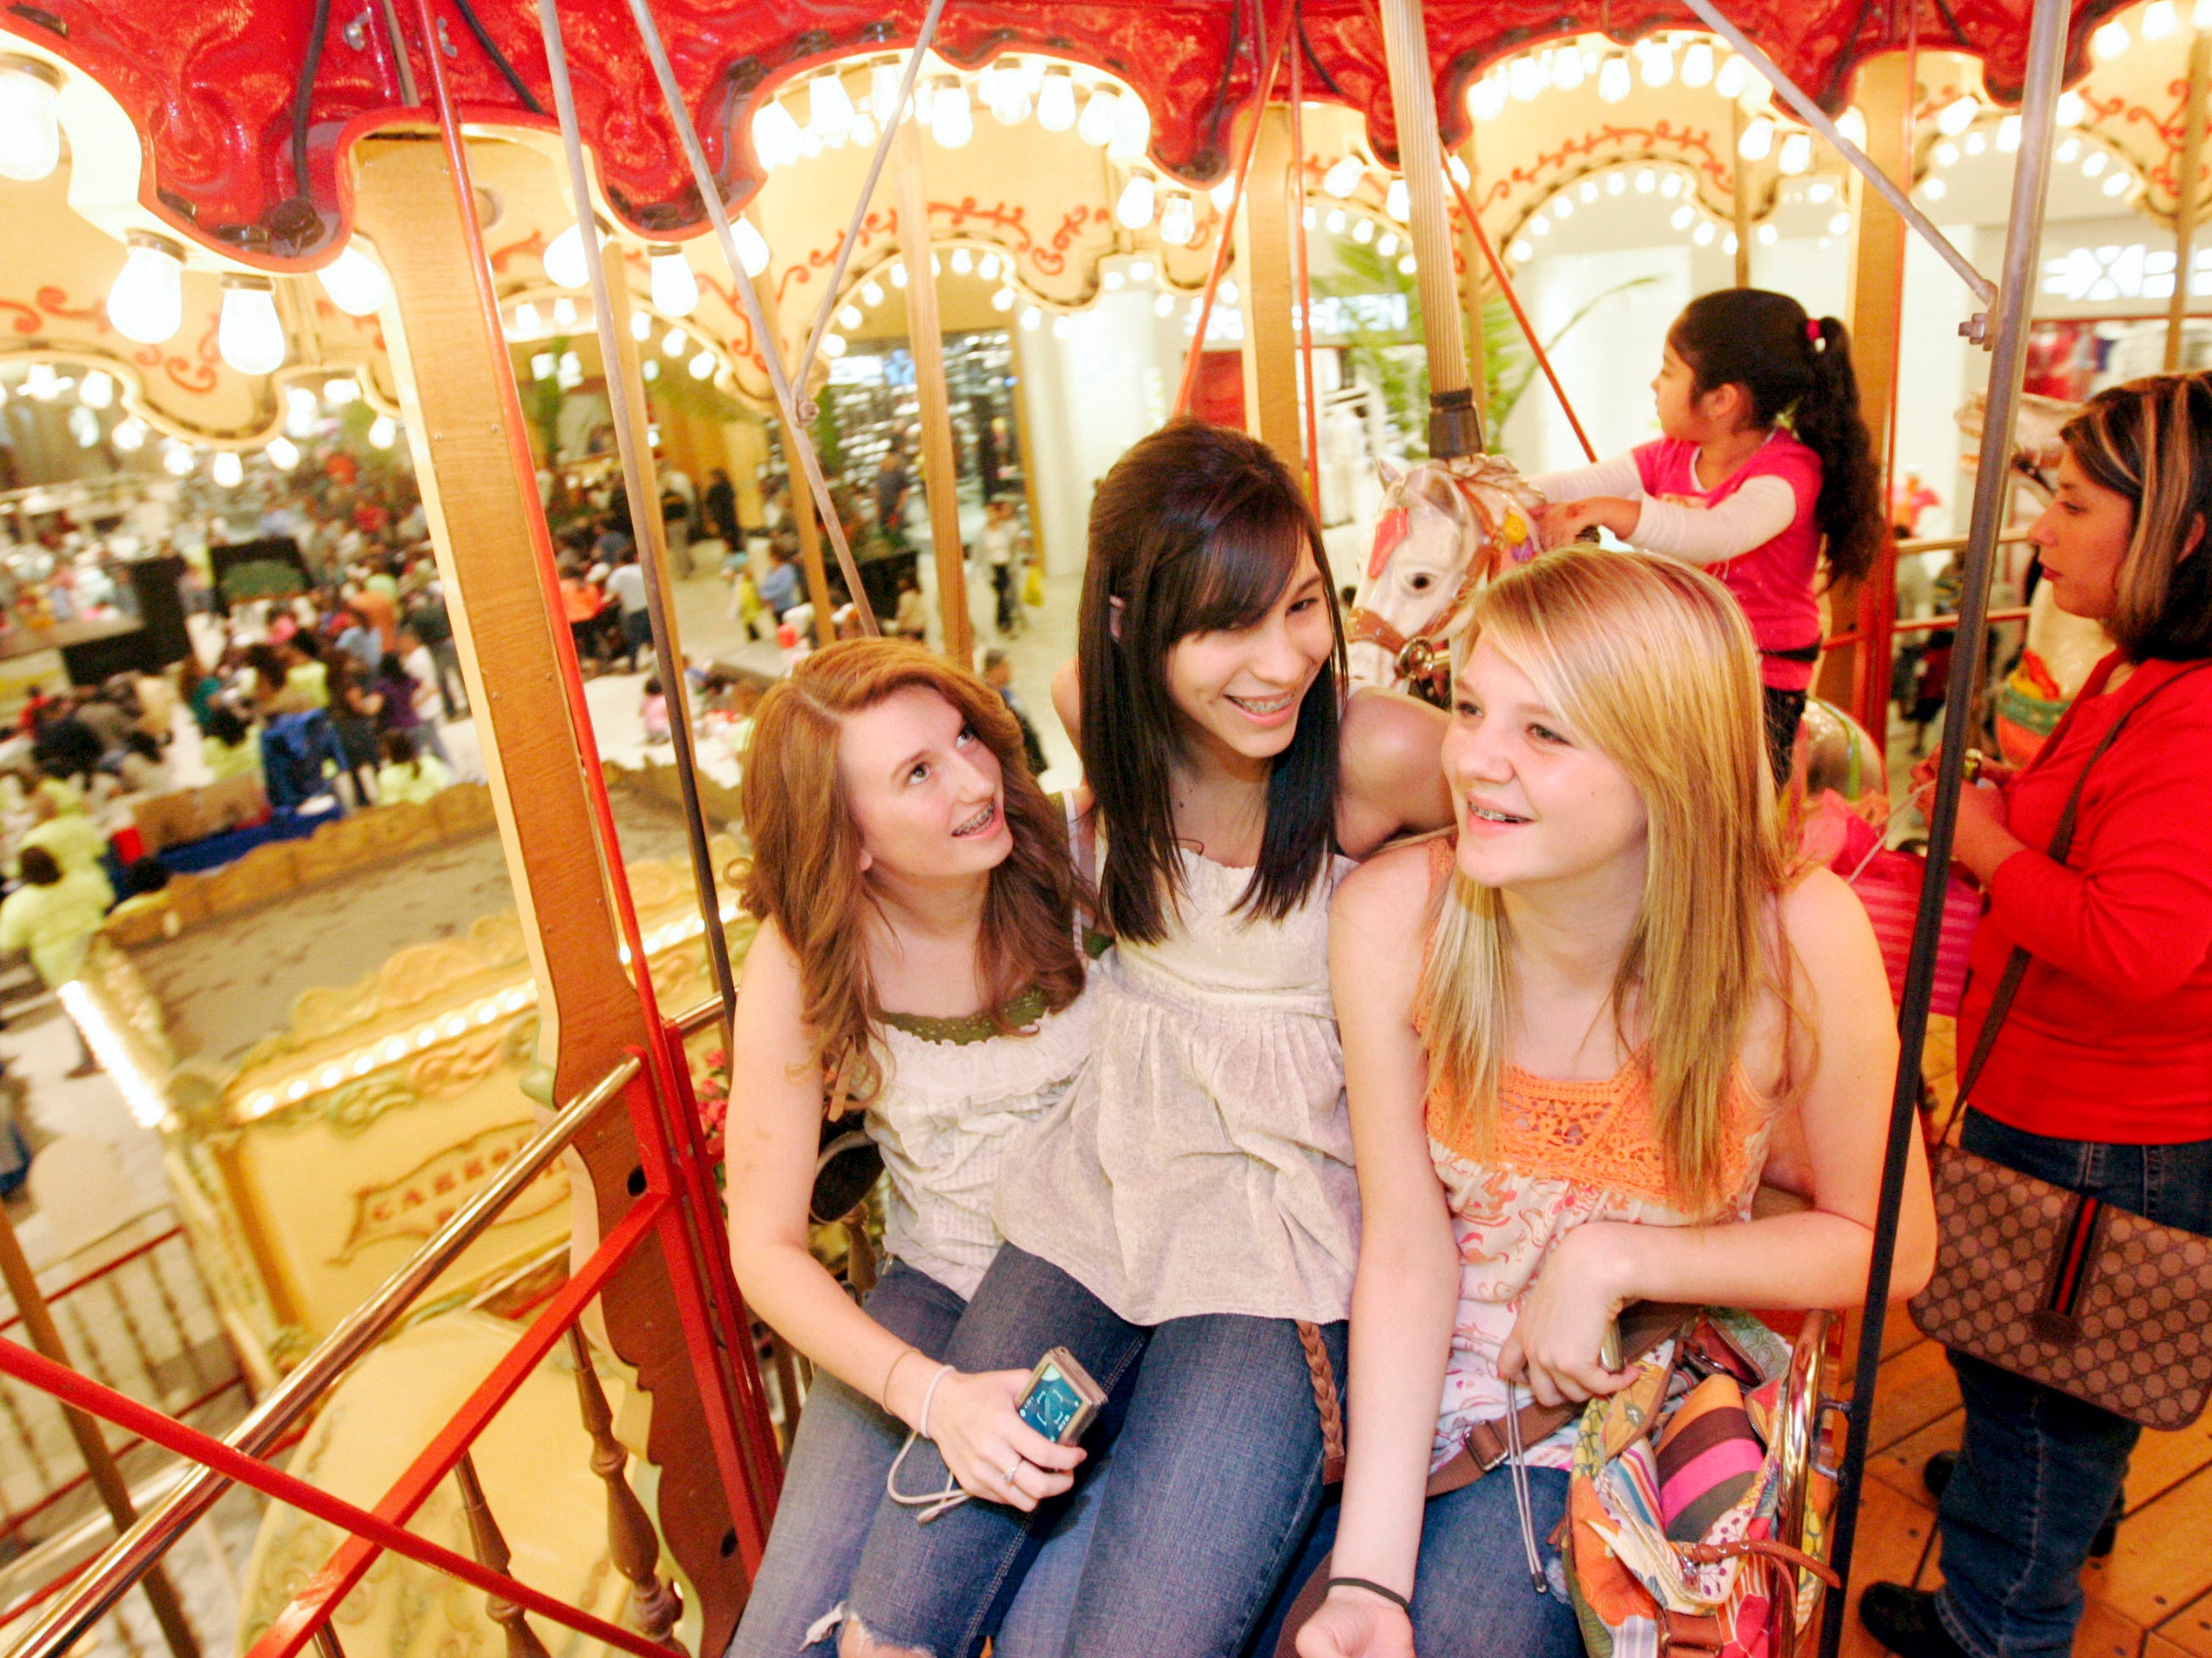 Haven Gibbs (from left), Brianna Gomez, and Allie Kubacak, all 14, sit on a seat together on the second level of the carousel Saturday, Jan. 31, 2009 at La Palmera mall in Corpus Christi. The three girls, all from Brady, Texas, were in town for Gomez' birthday and visiting Gomez's grandparents in Port Aransas.